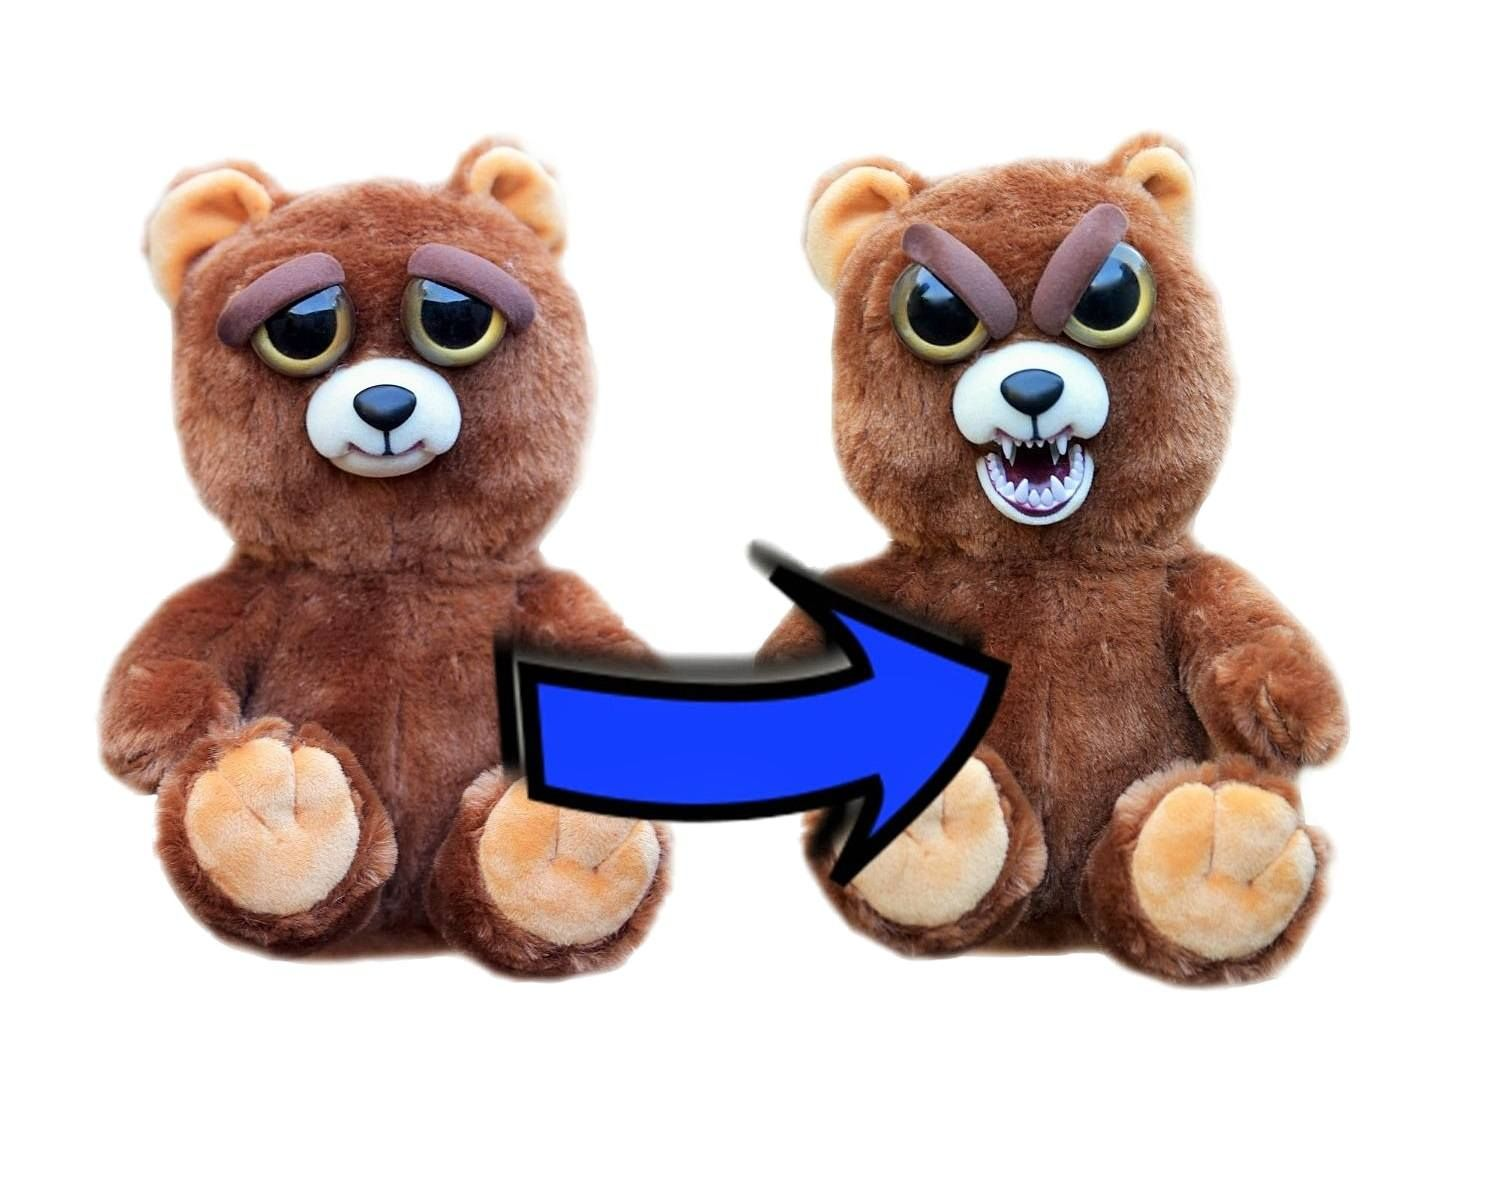 Details about Feisty Pets Plush Stuffed Animals by William